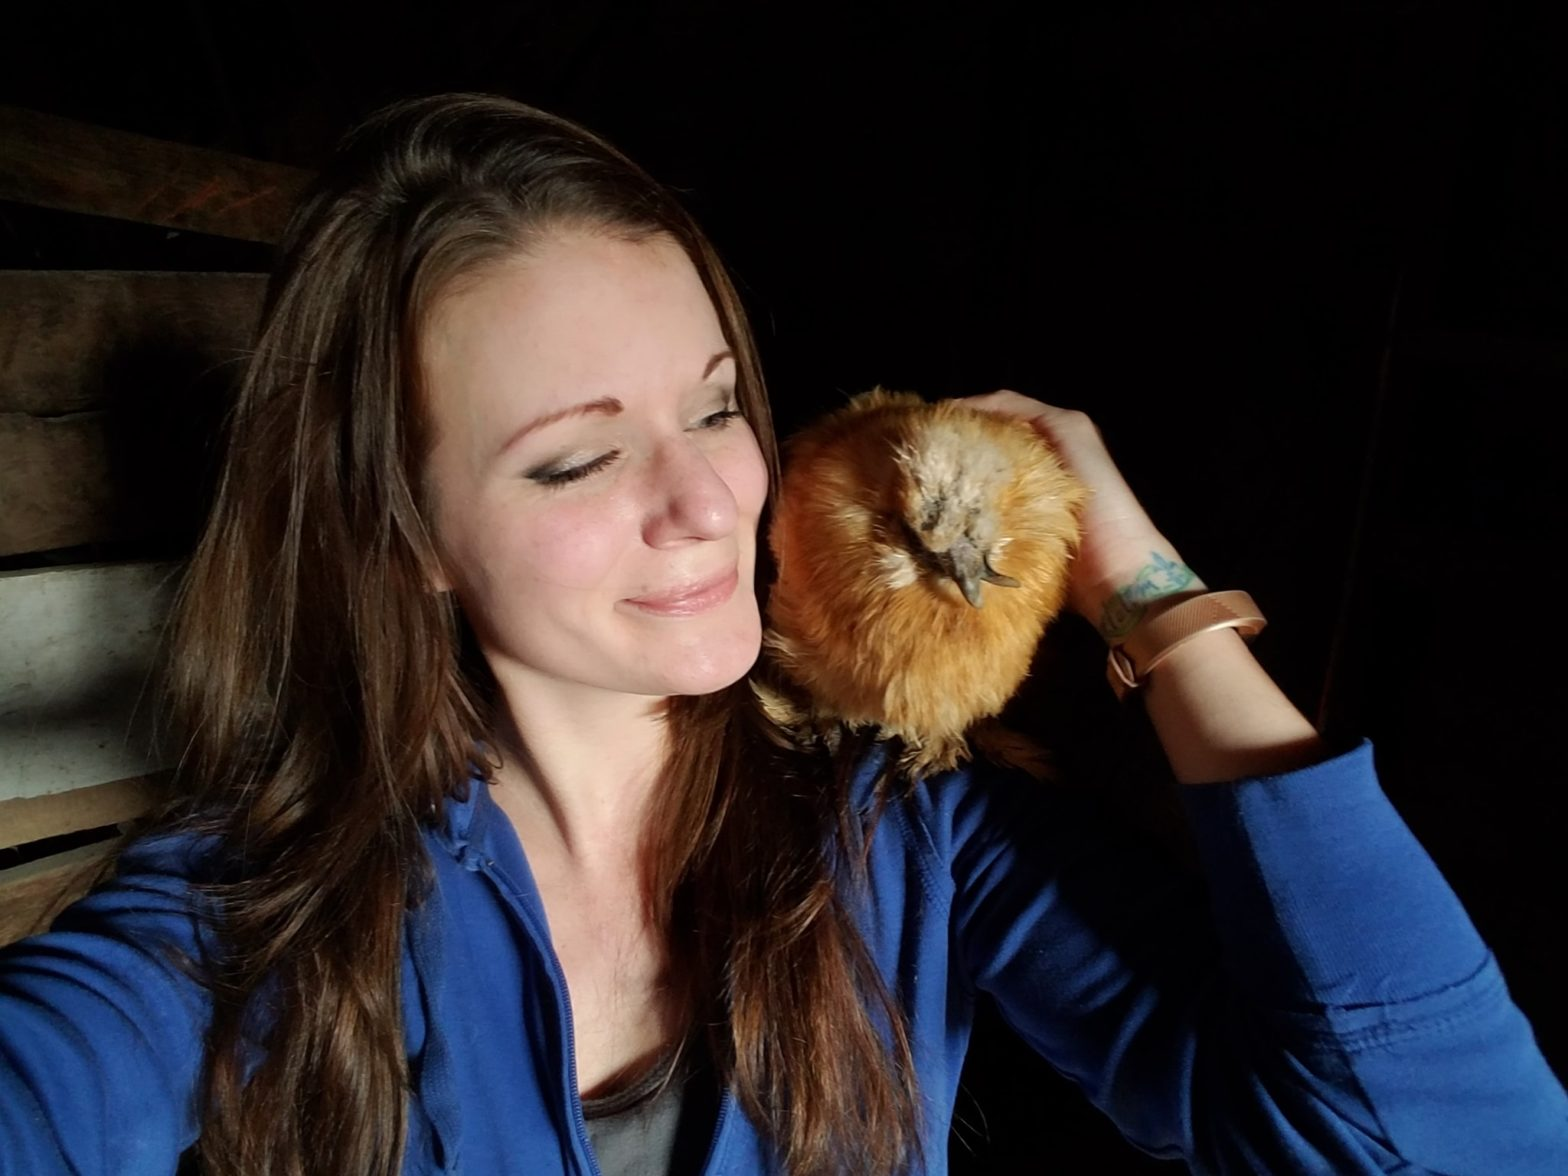 Jessica Hawkes cuddles with a chicken on her shoulder at her Animal Sanctuary in New Rockford, ND.